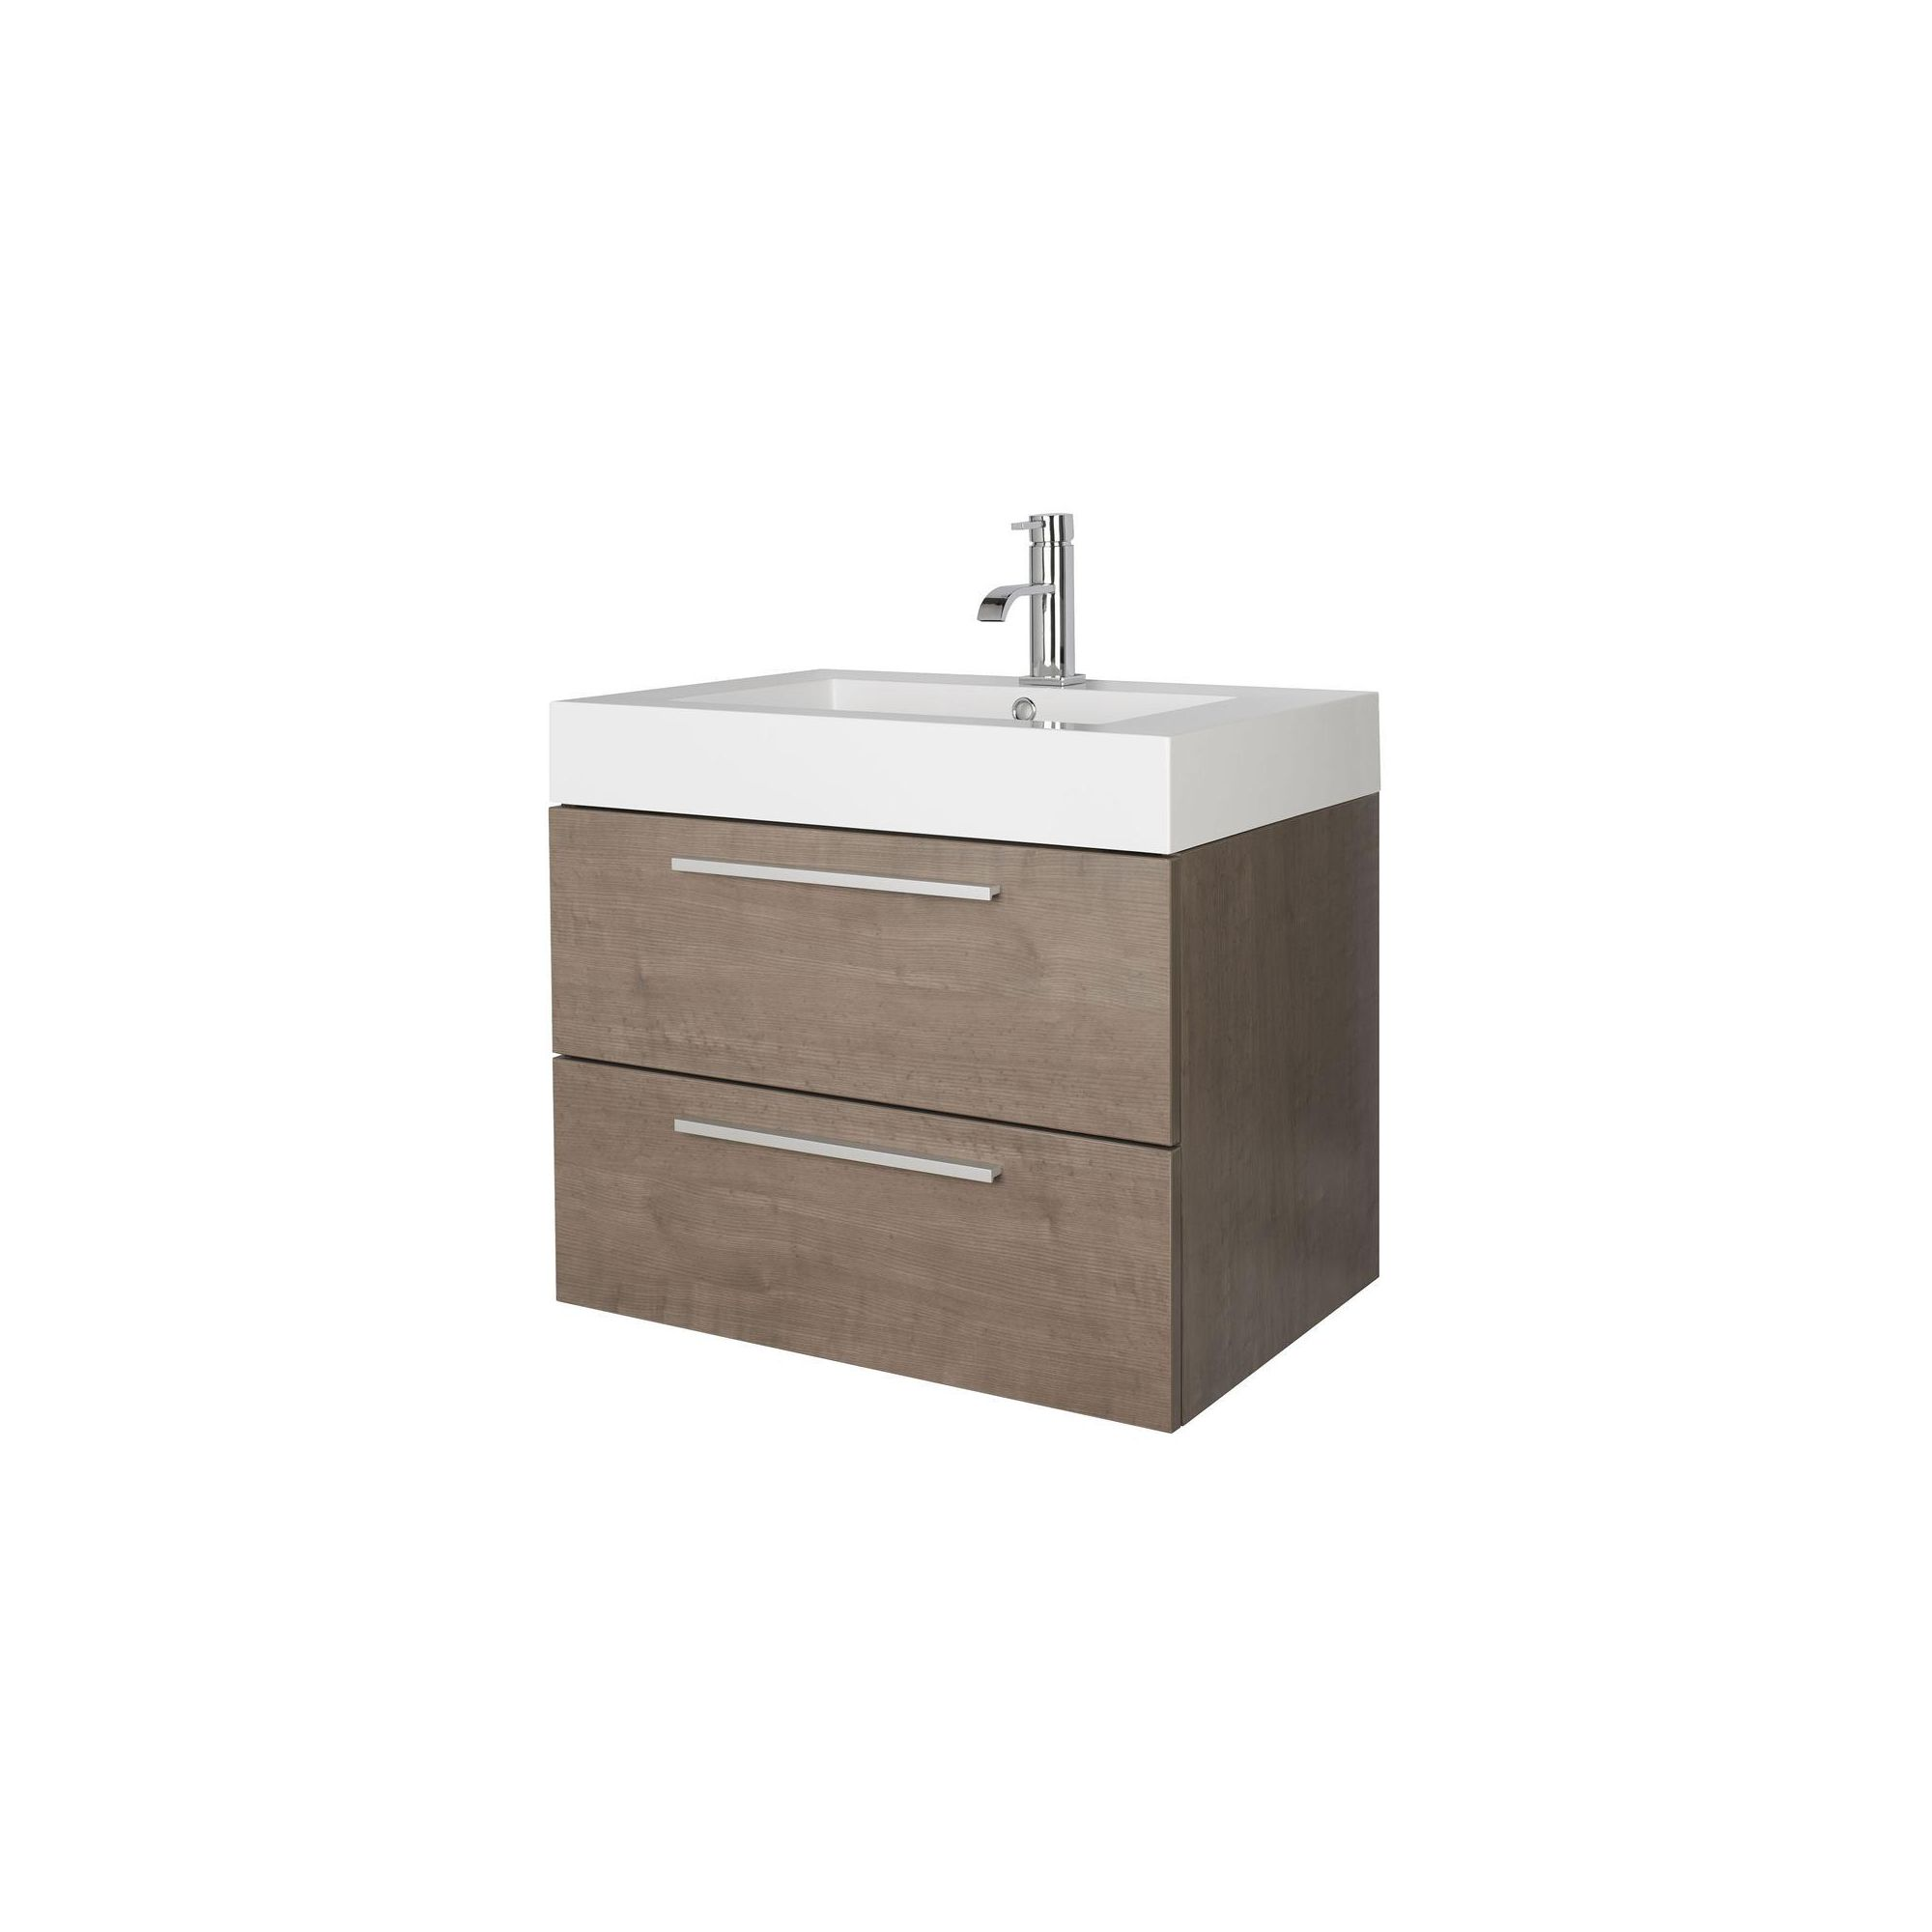 Premier Relax Wall Mounted Basin and Cabinet Oak Finish